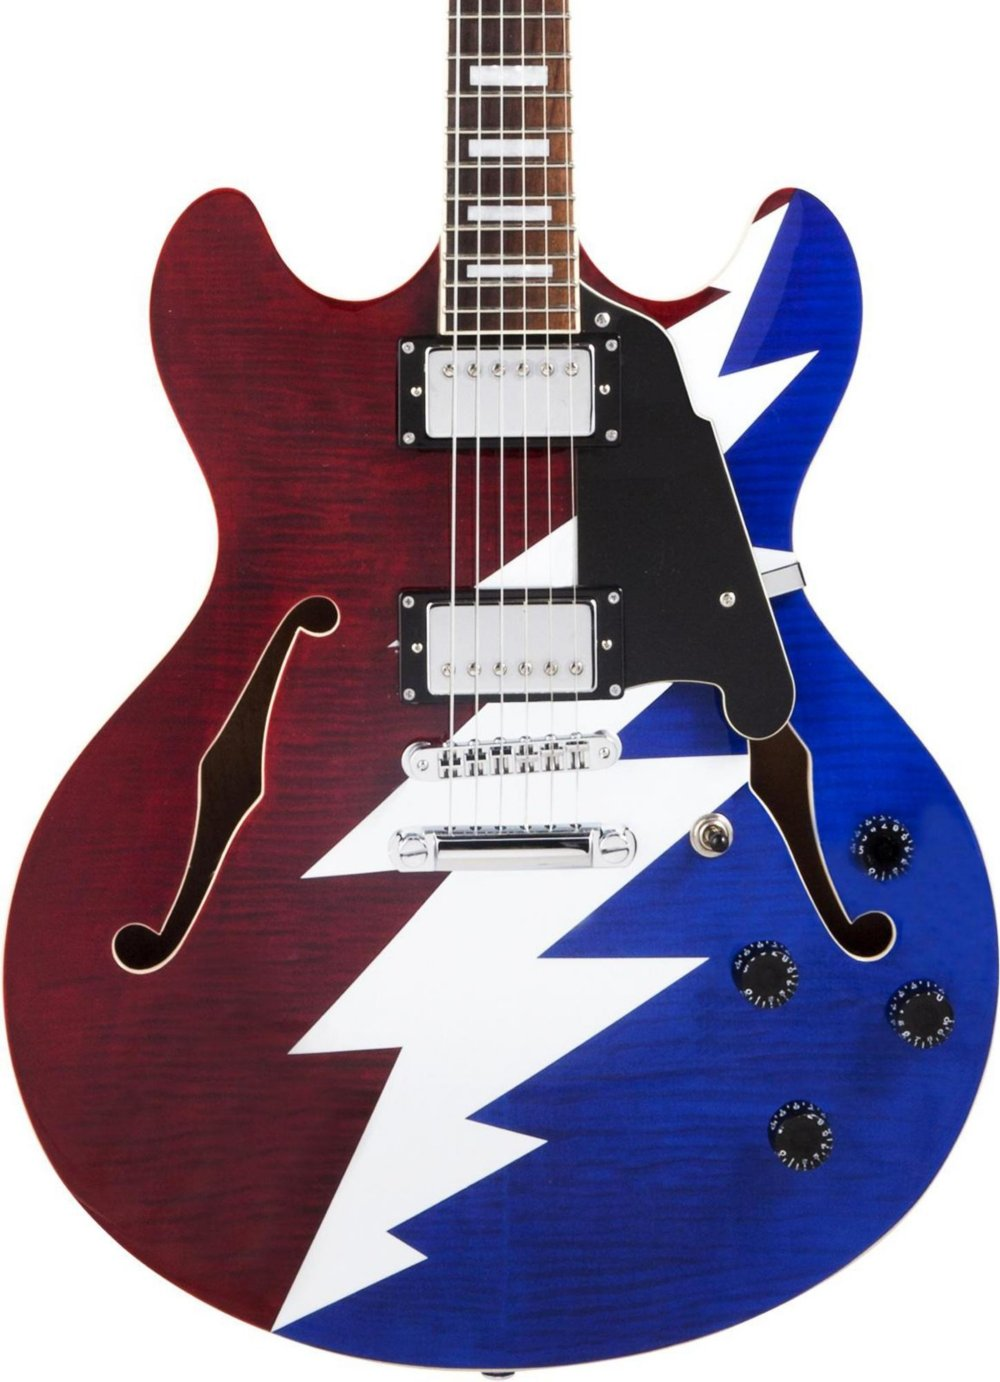 Cheap D Angelico Premier Grateful Dead DC Semi-Hollow Electric Guitar - Red White & Blue Black Friday & Cyber Monday 2019